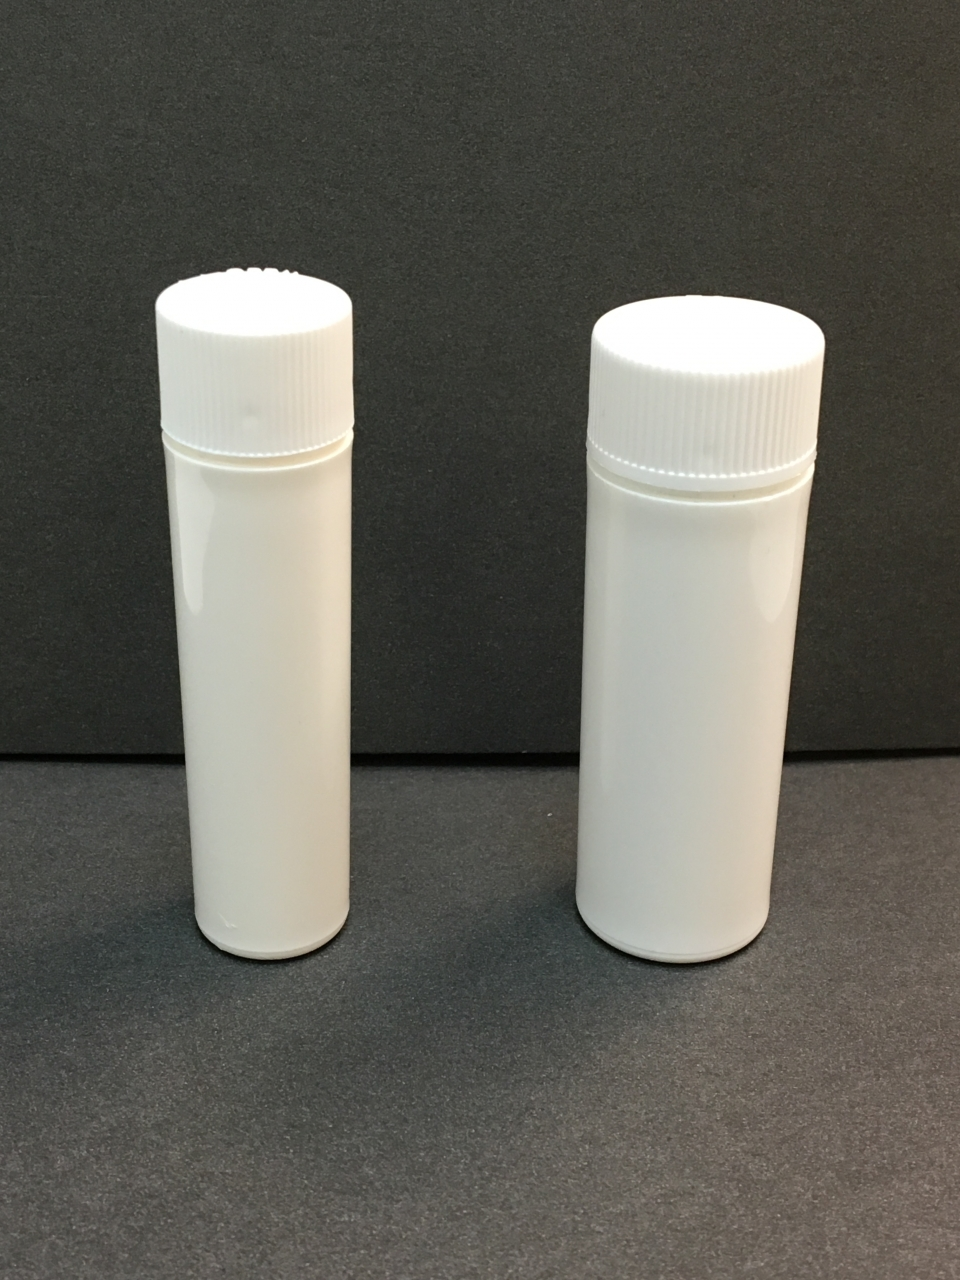 16mm - 20mm CR vials